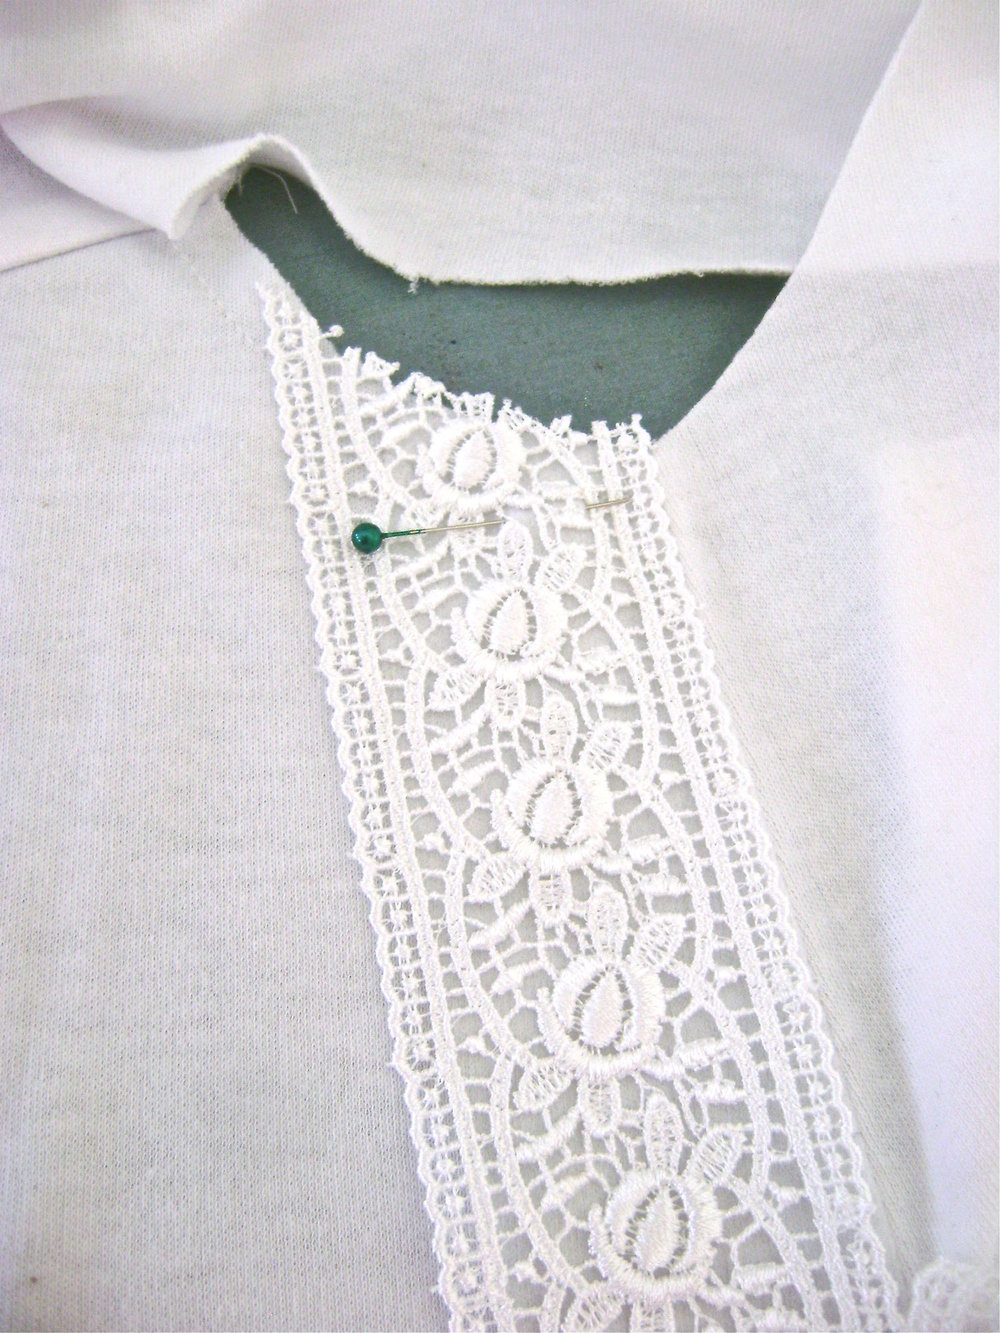 step 13 - Position the lace on the shirt front using the center crease as your guide.  Open out the facing and pin the lace in place.